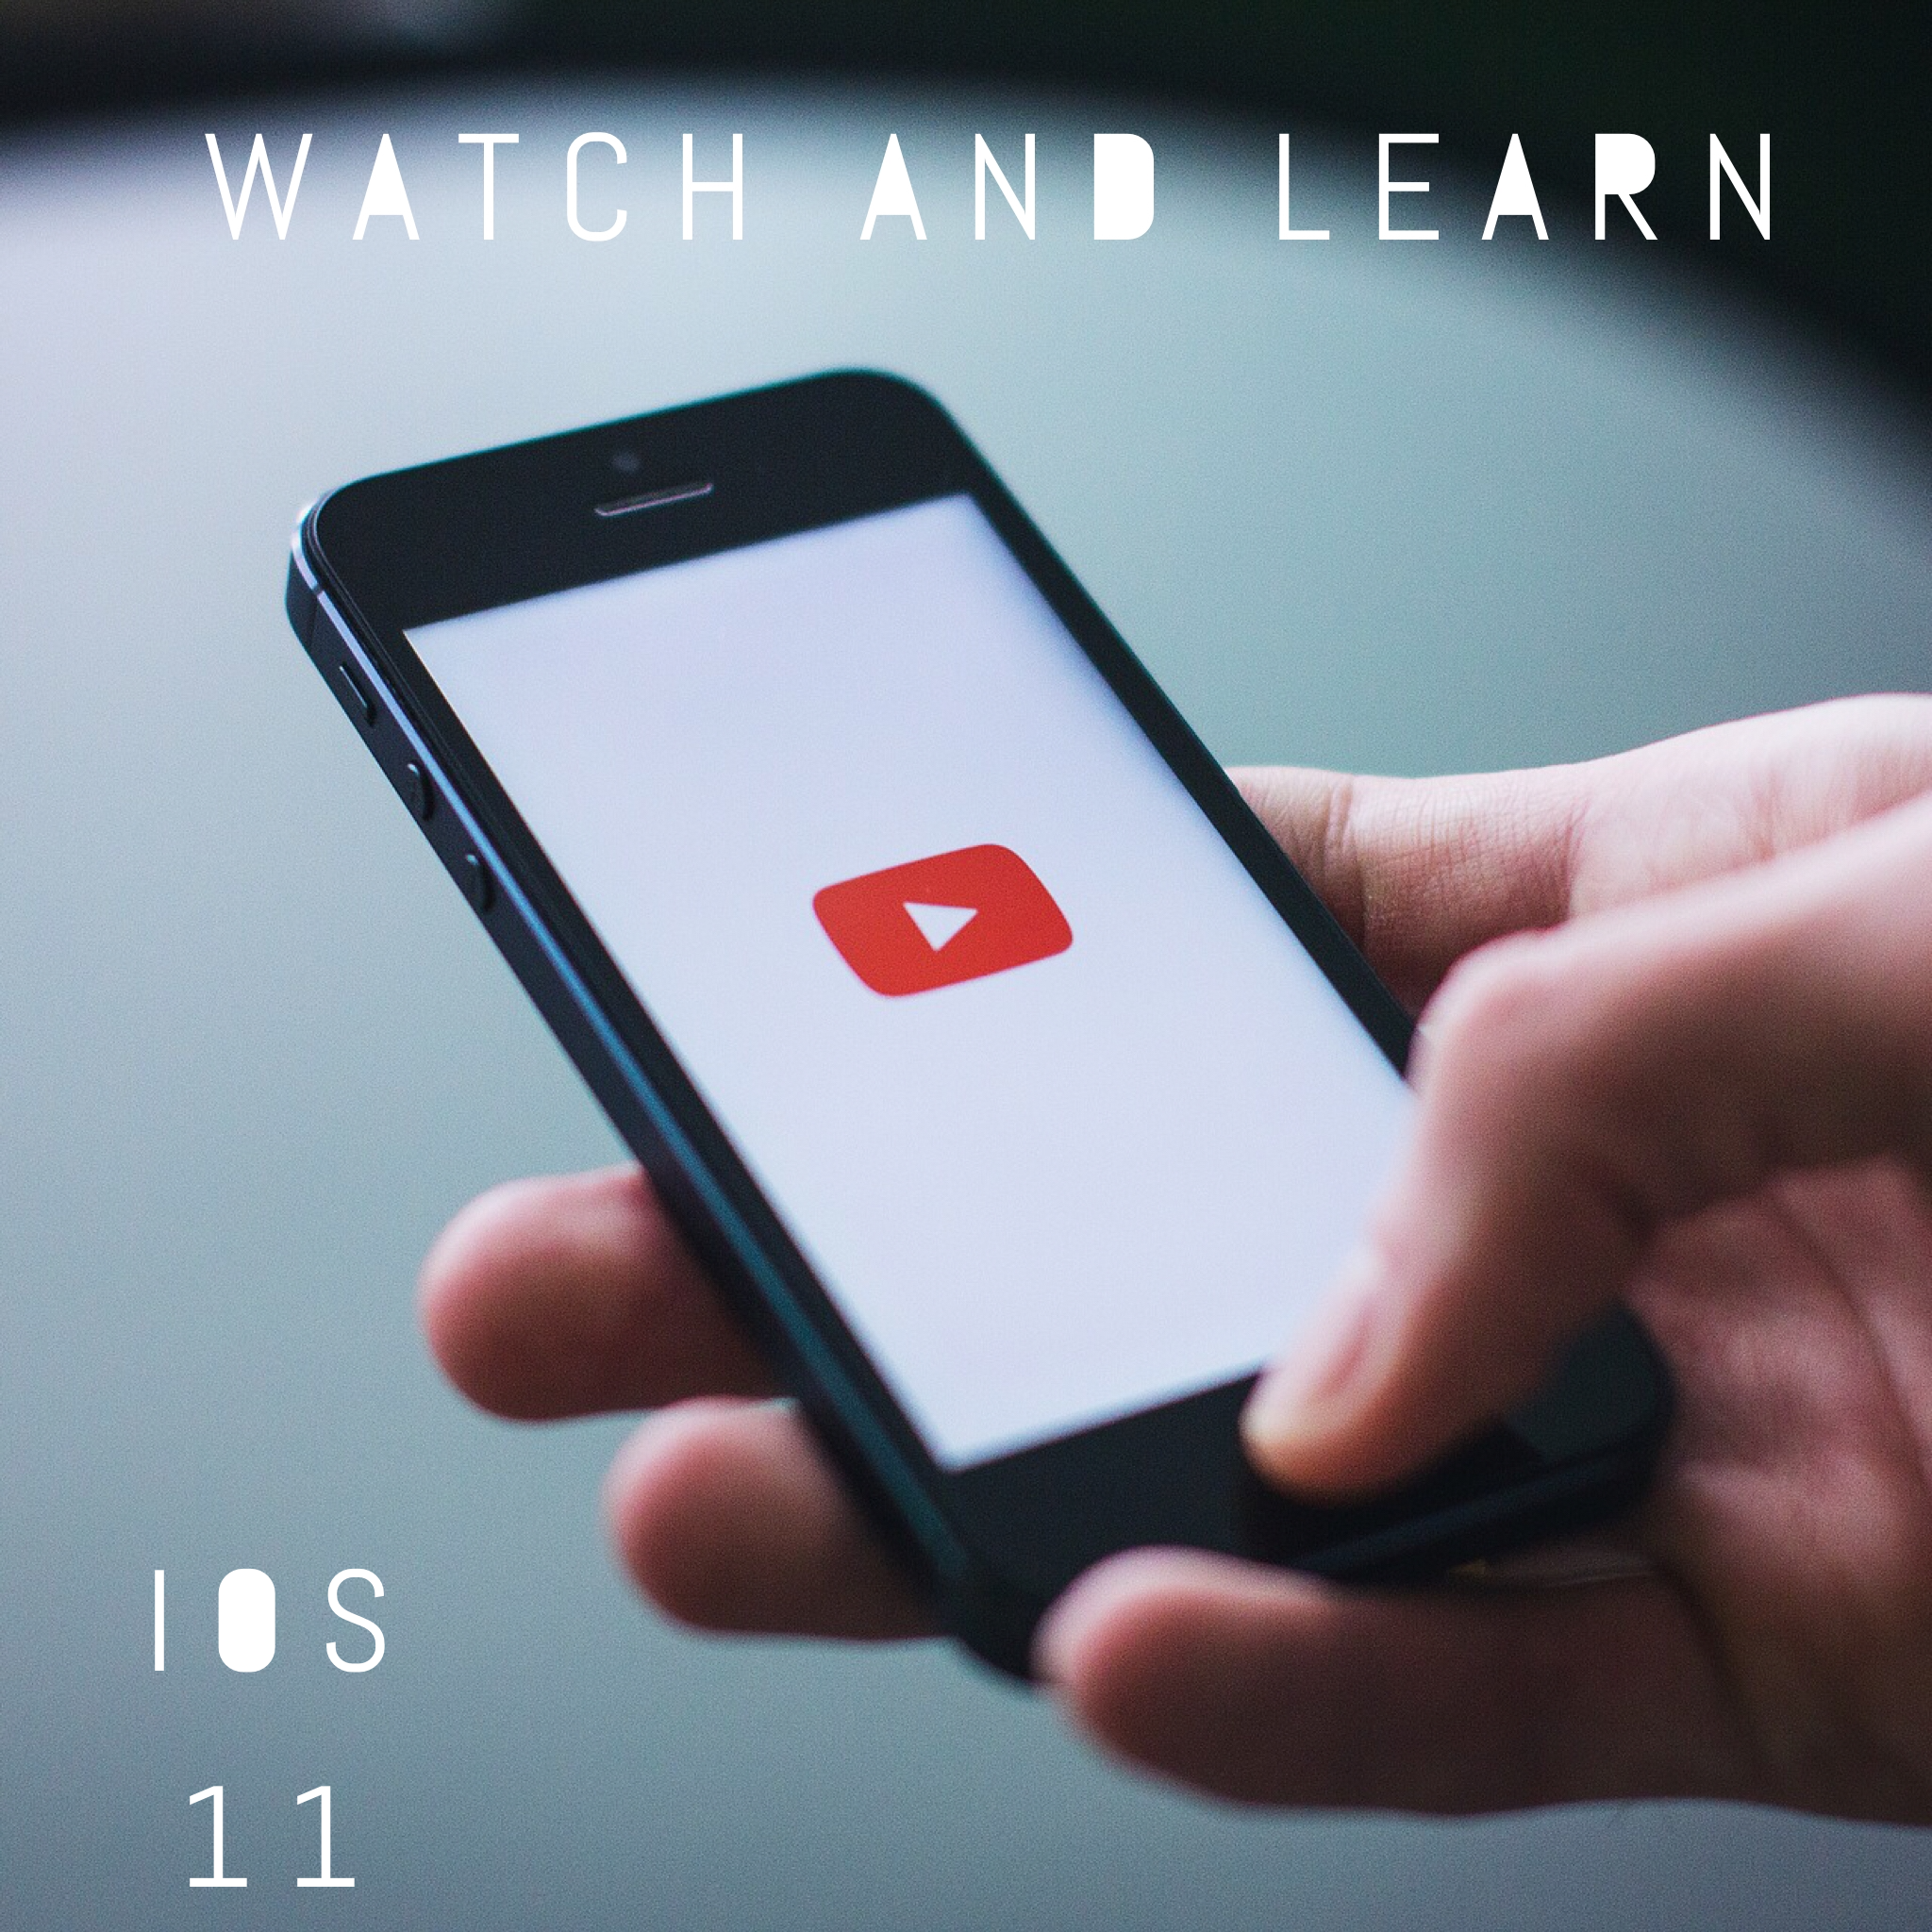 watch and learn iOS11.PNG